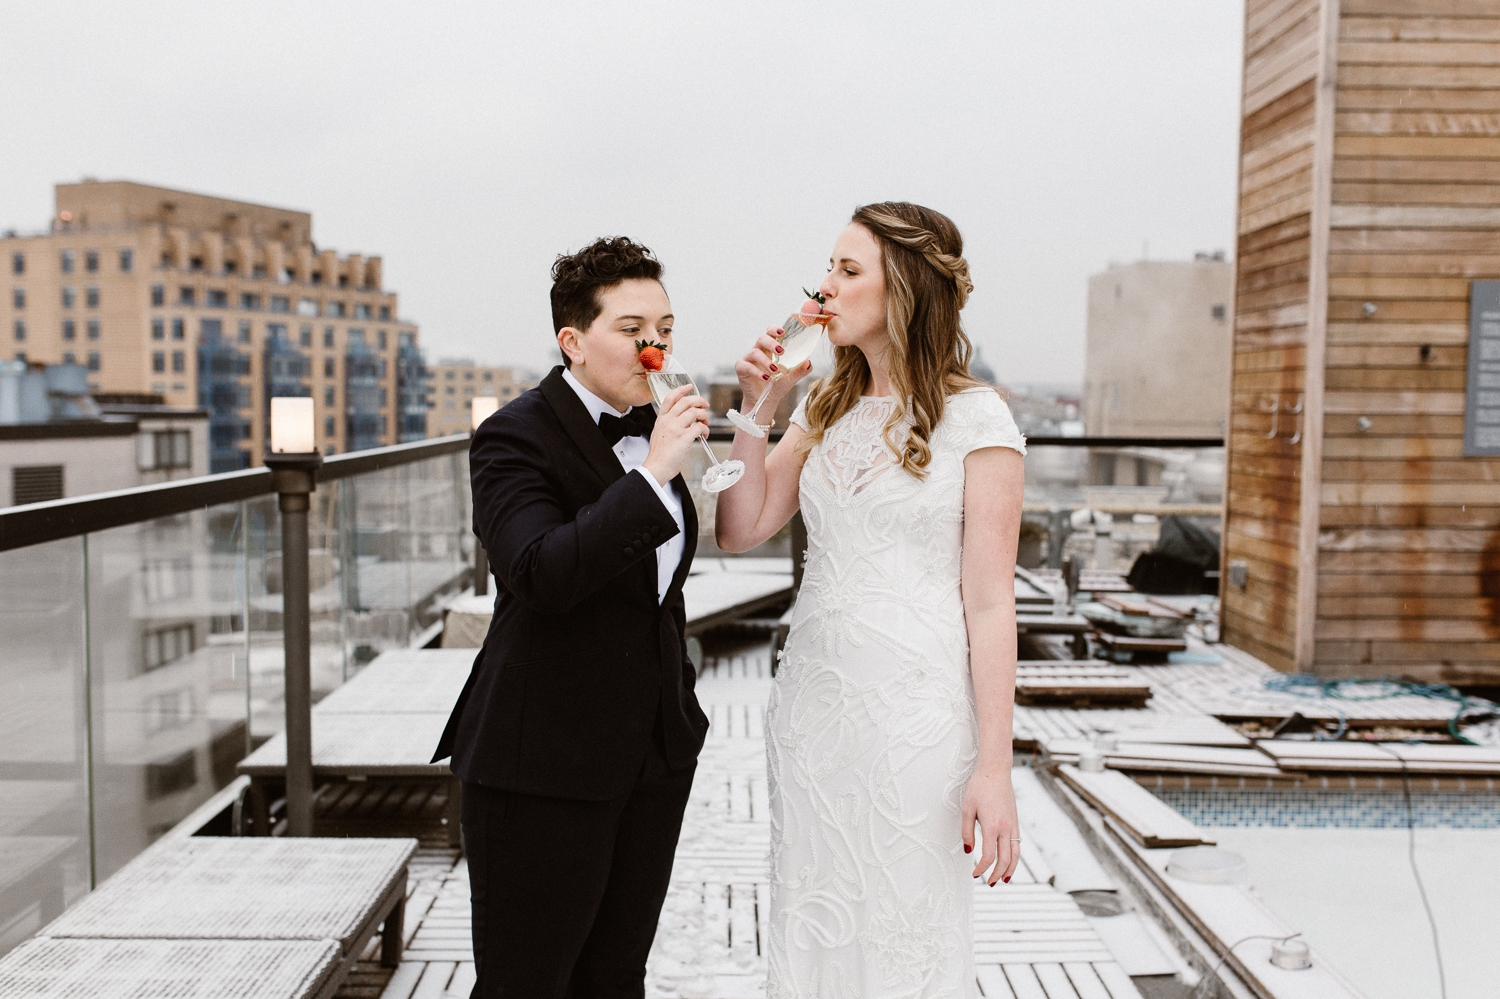 mason-and-rook-first-look-rooftop-josephine-butler-parks-wedding-photographer 64.jpg